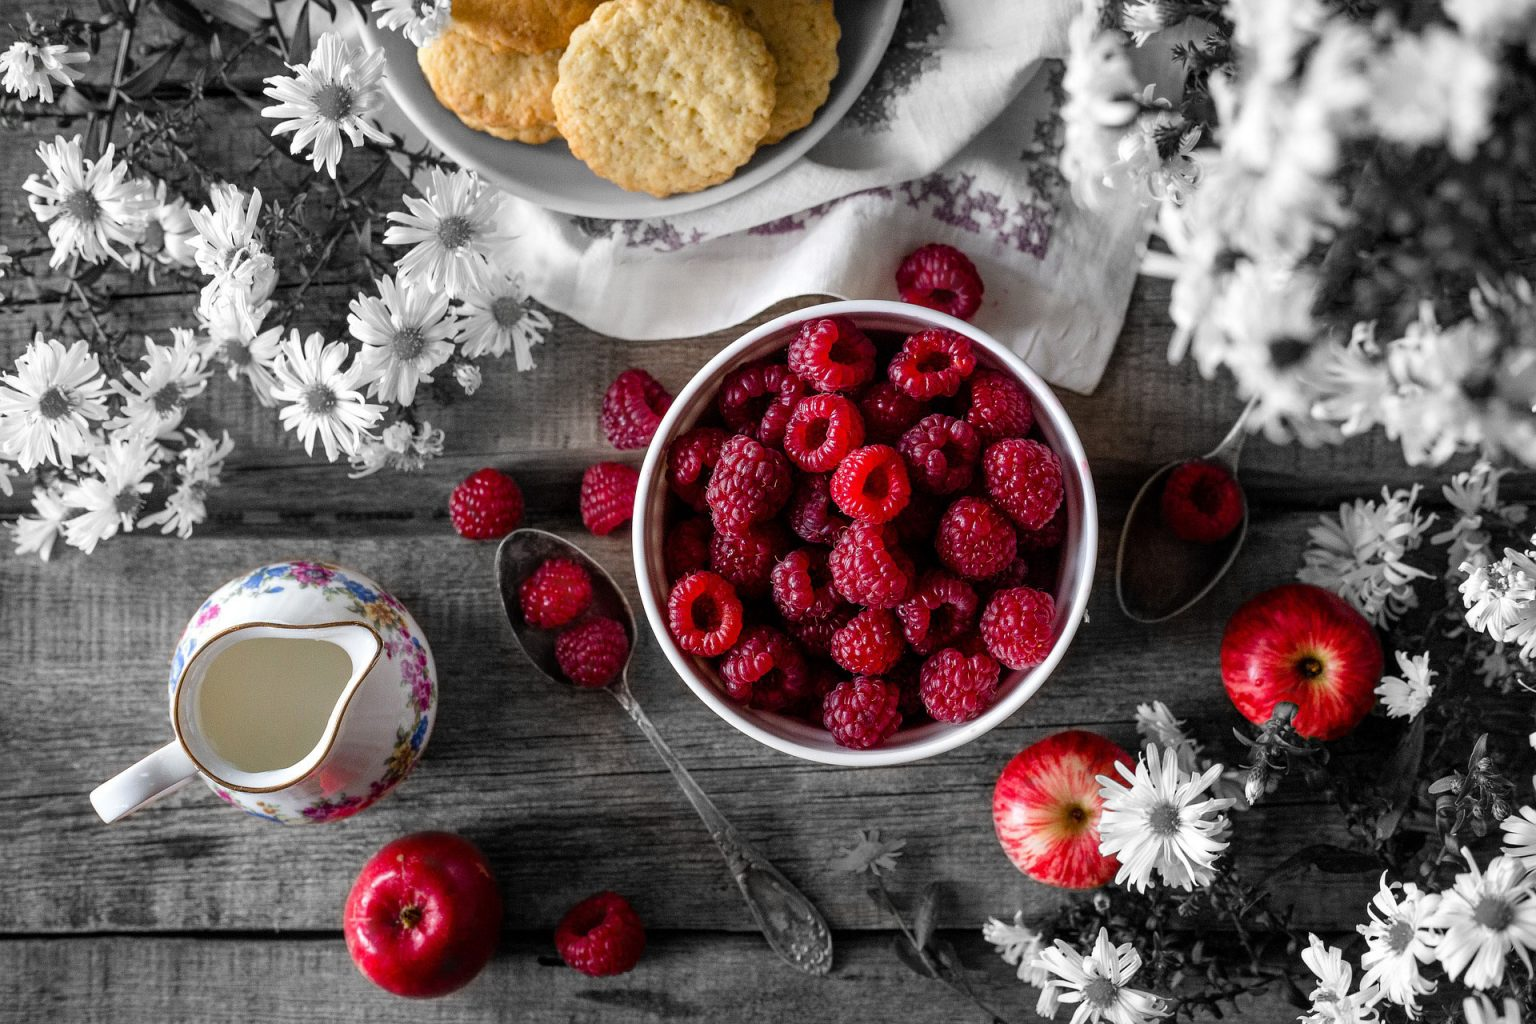 On the table Some berries, few apples and snacks are placed